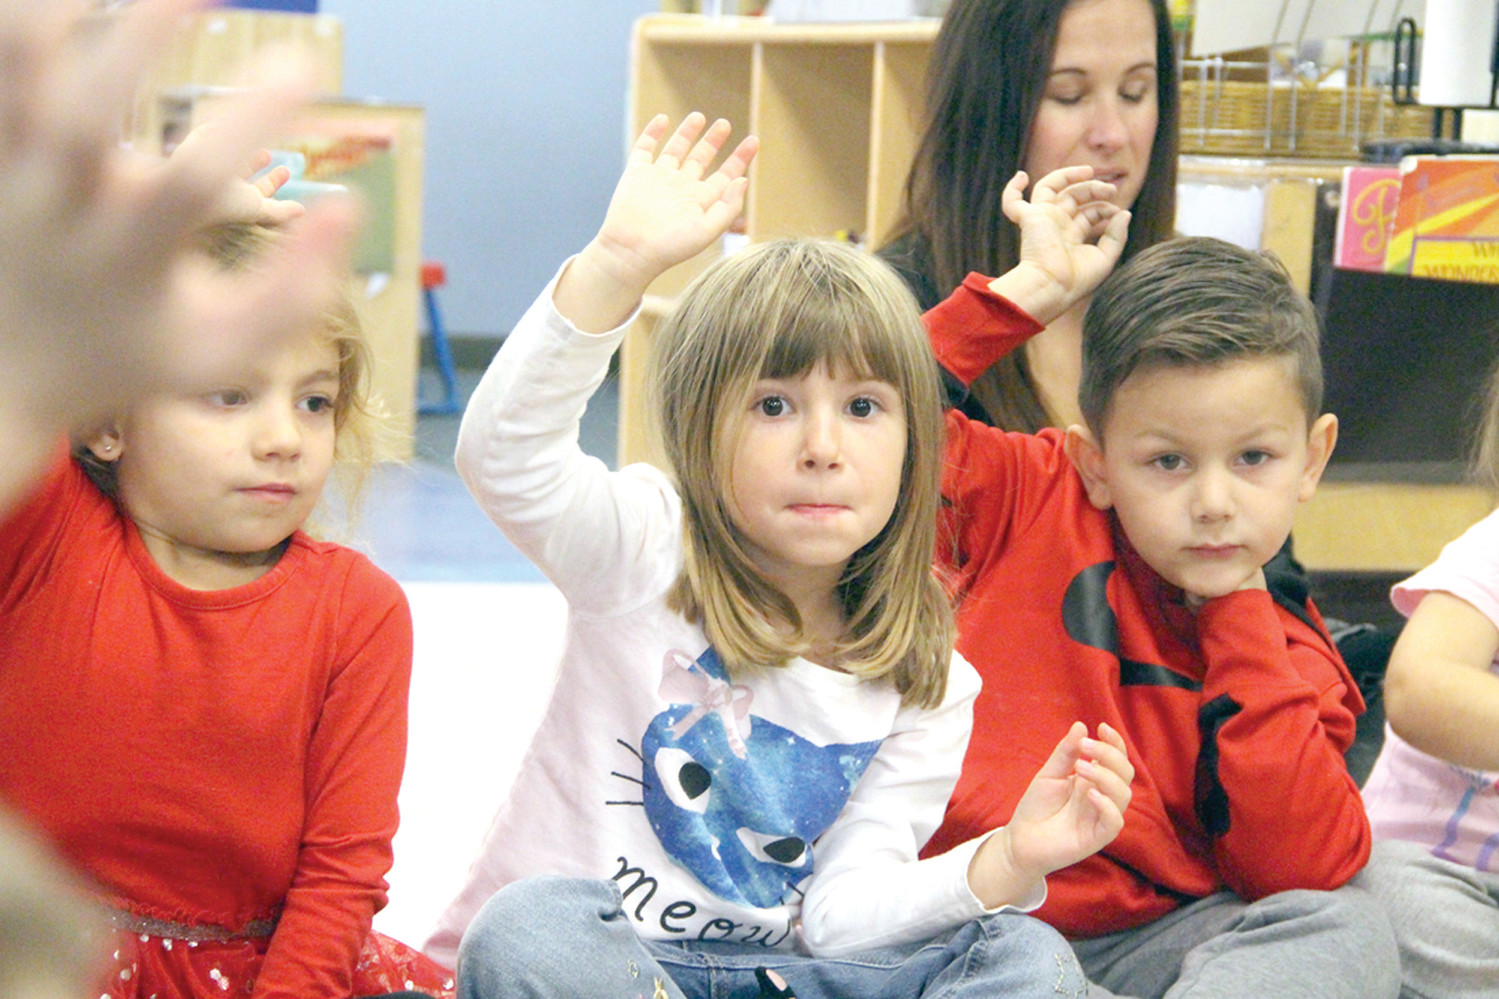 AWED BY AN AUTHOR: Westbay Children's Center pre-school students Layla Dureault, Eleanor Cotter Grayson and Gabriel Luna were tuned into the story being read by Linda Brennan.